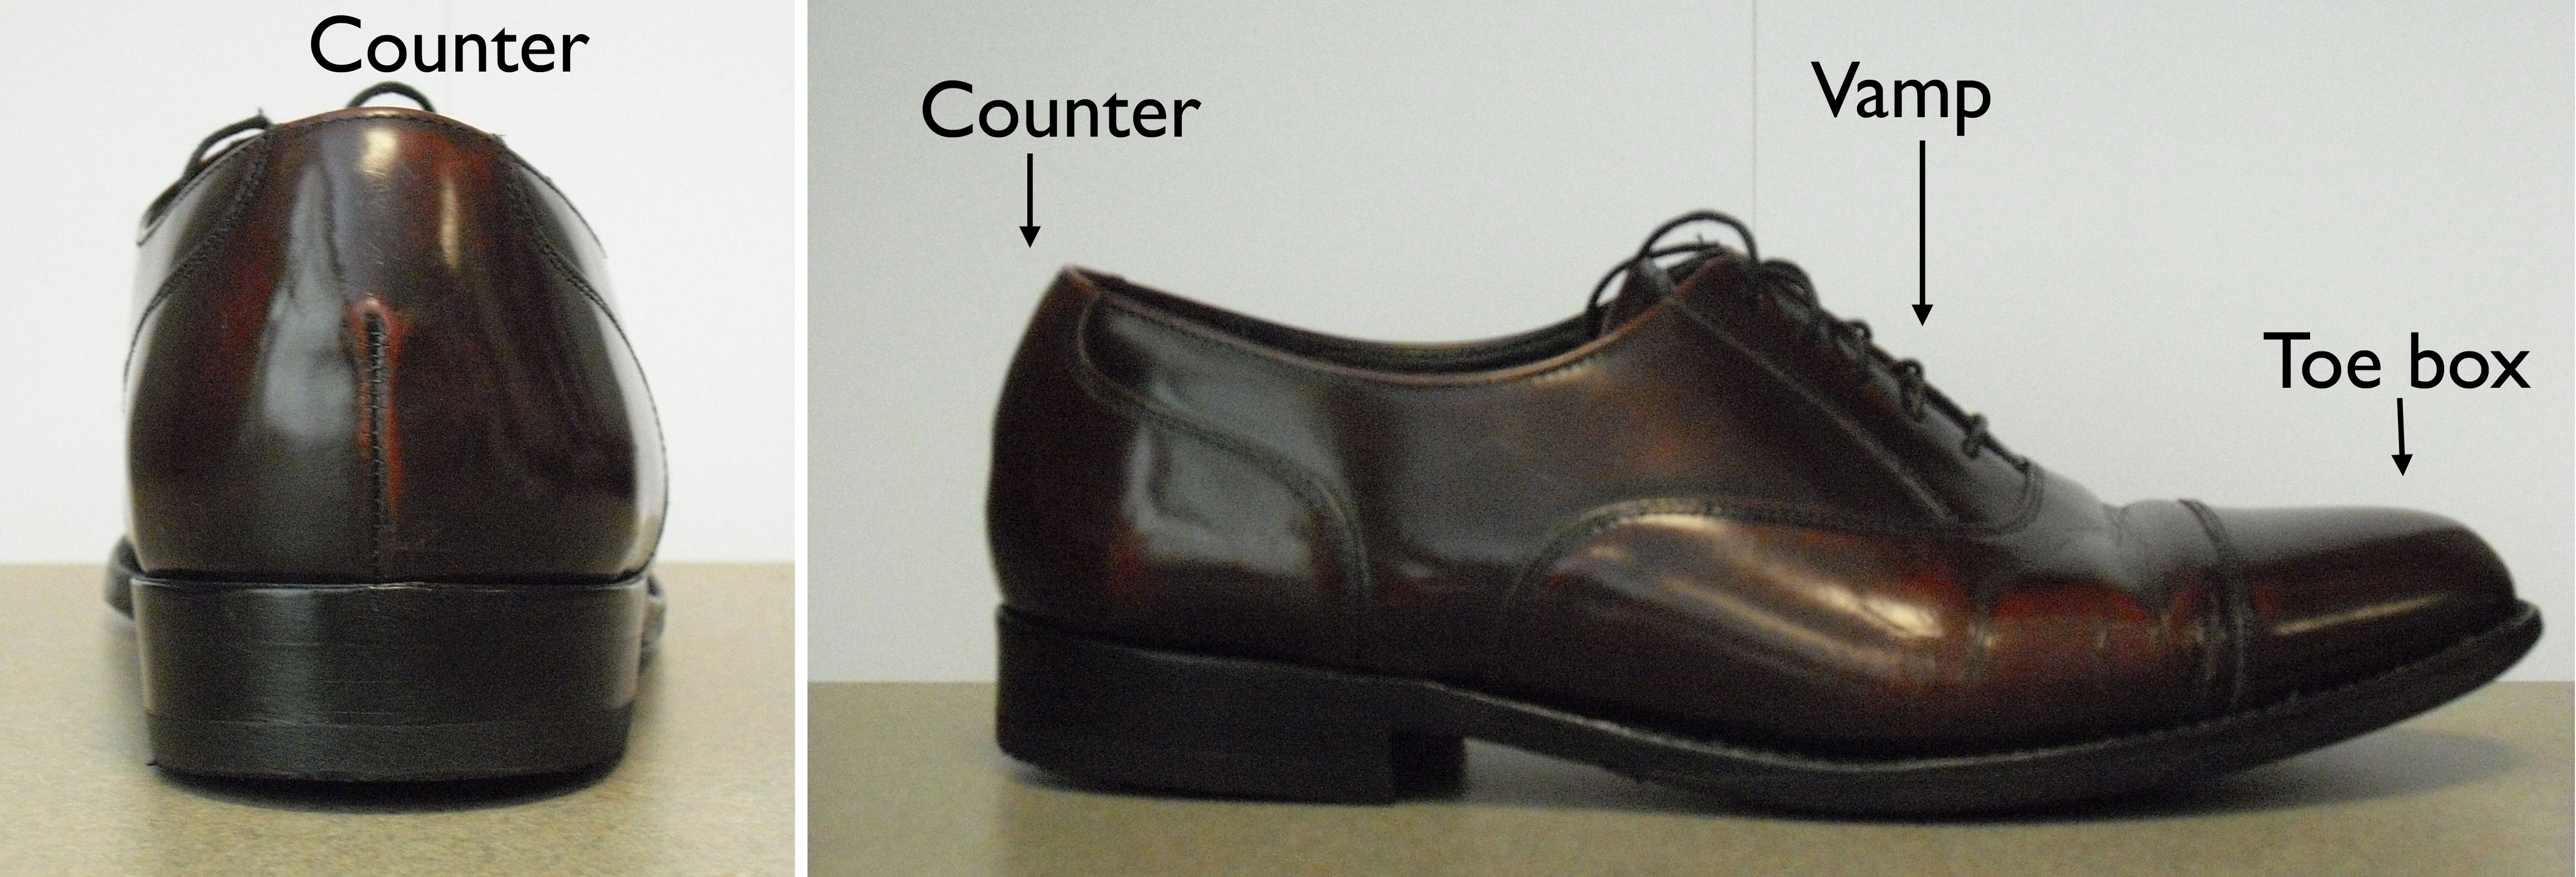 The parts of a shoe